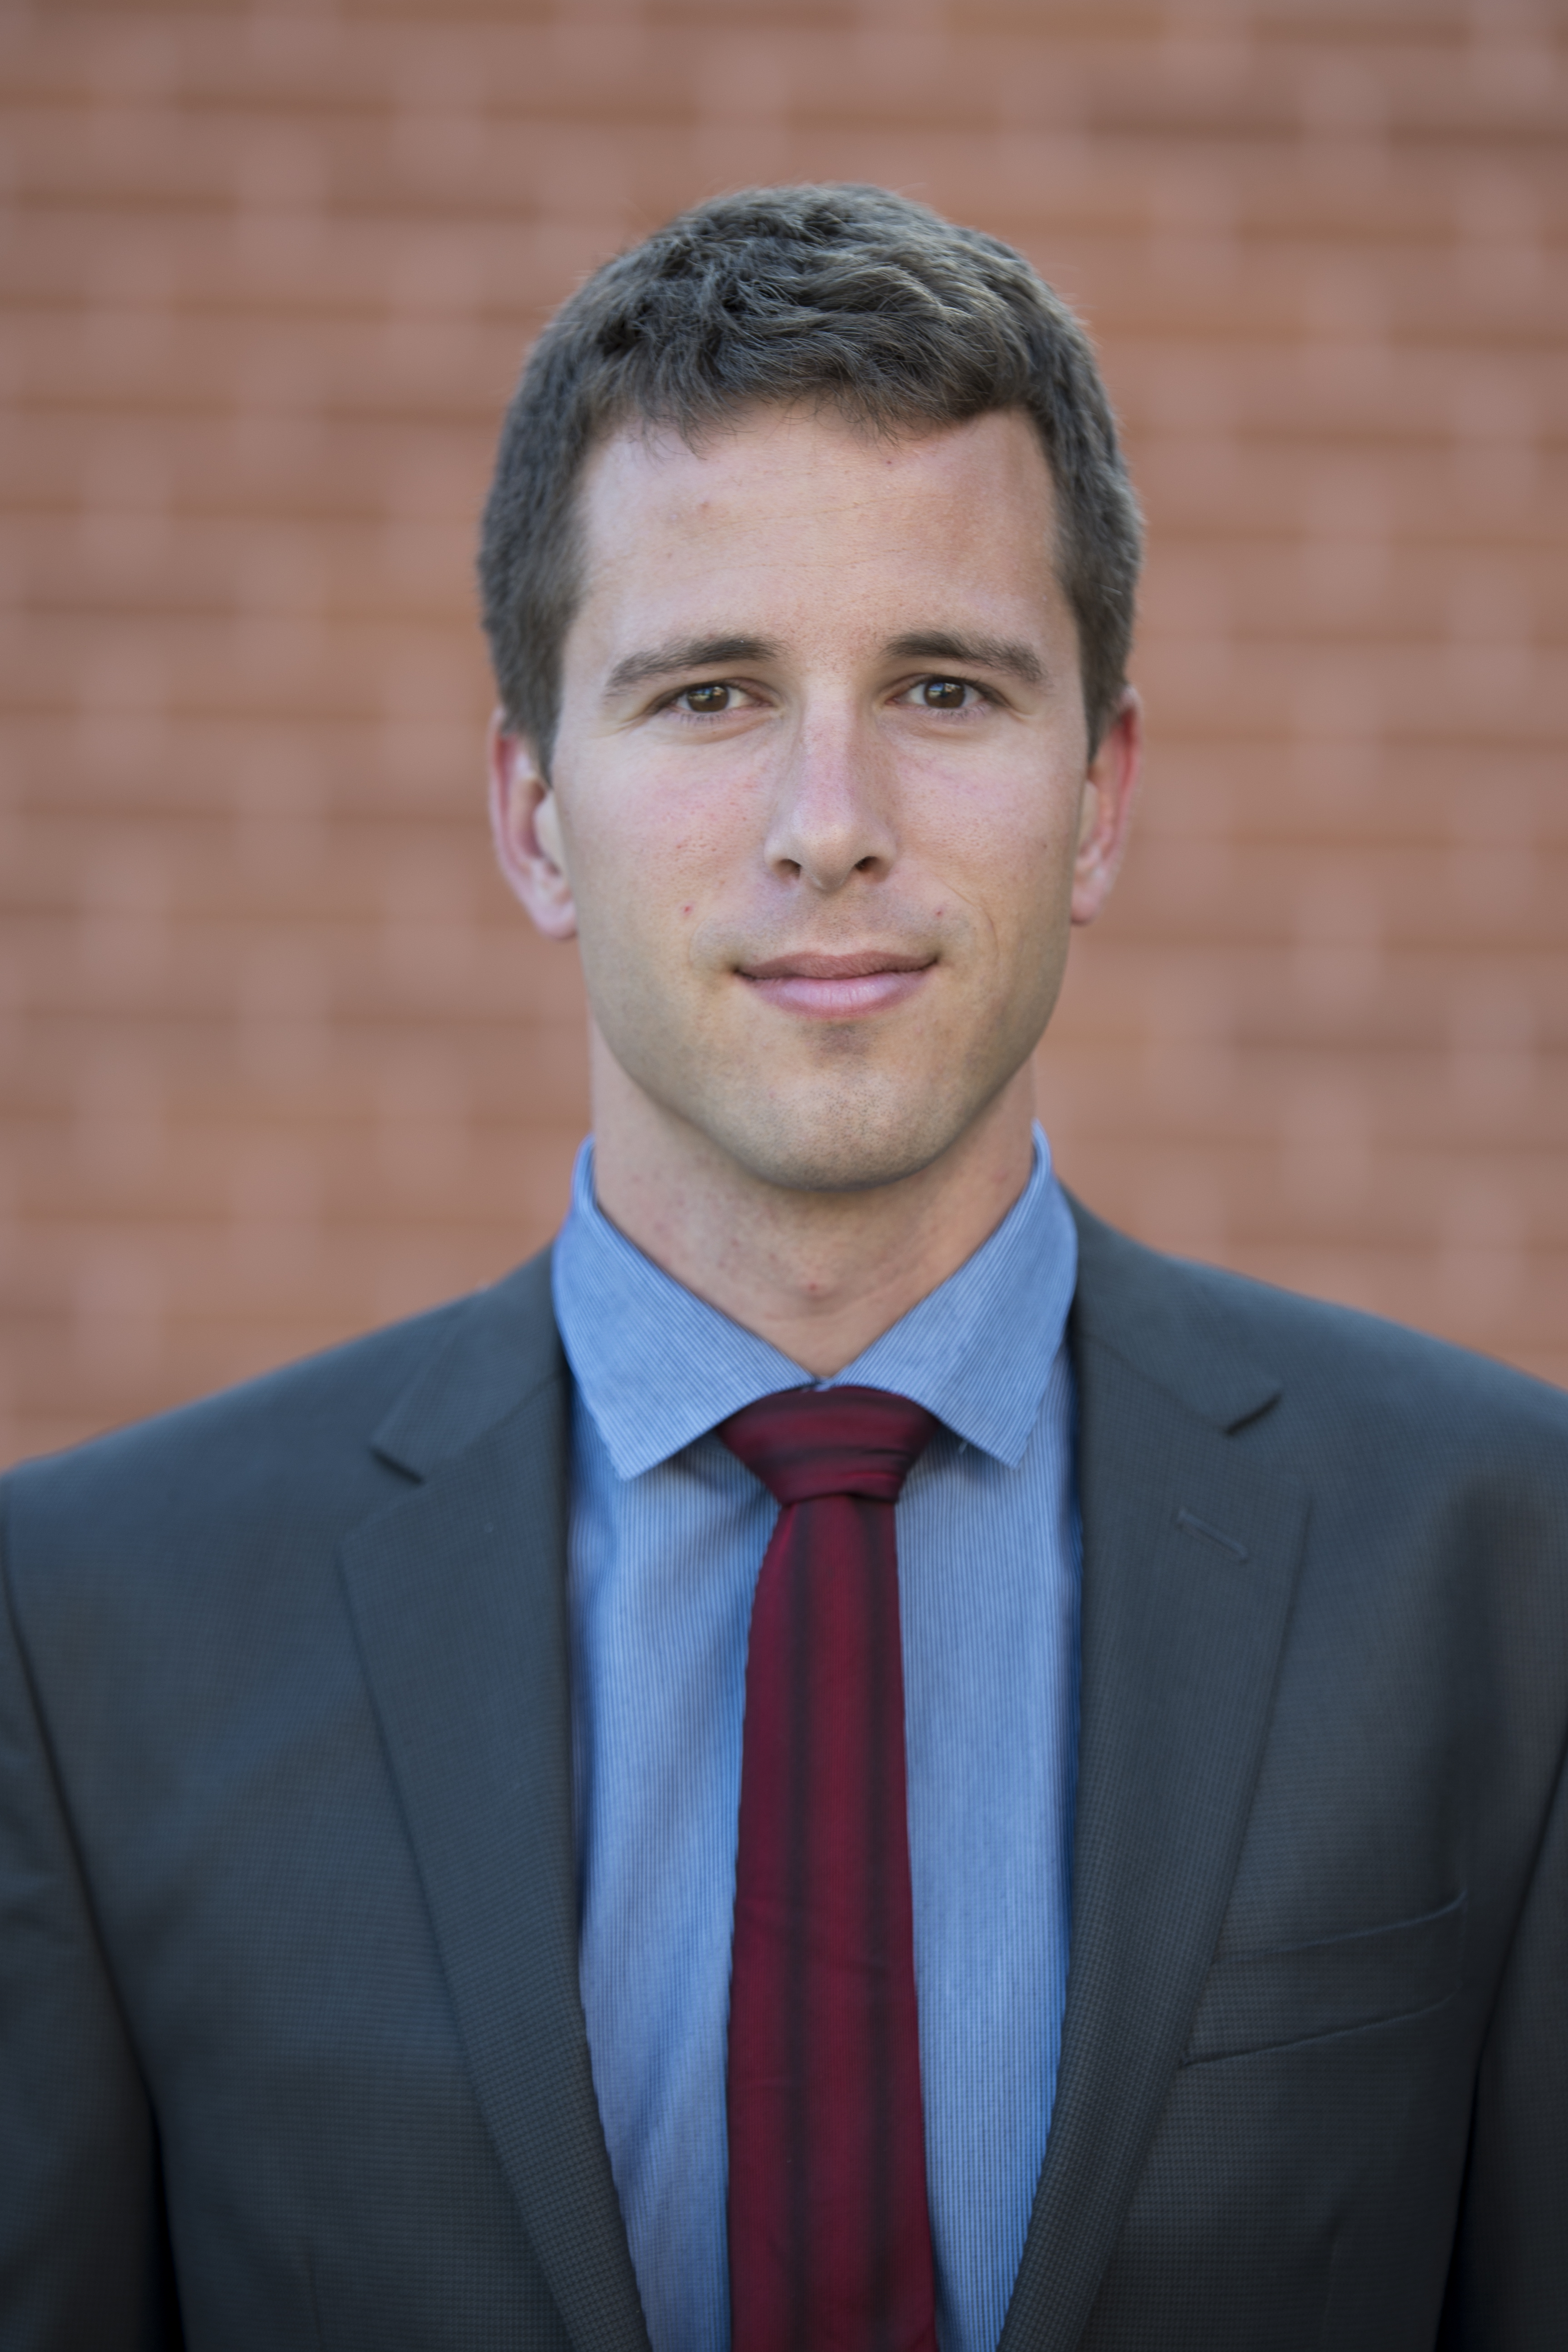 wesley blundell faculty profile